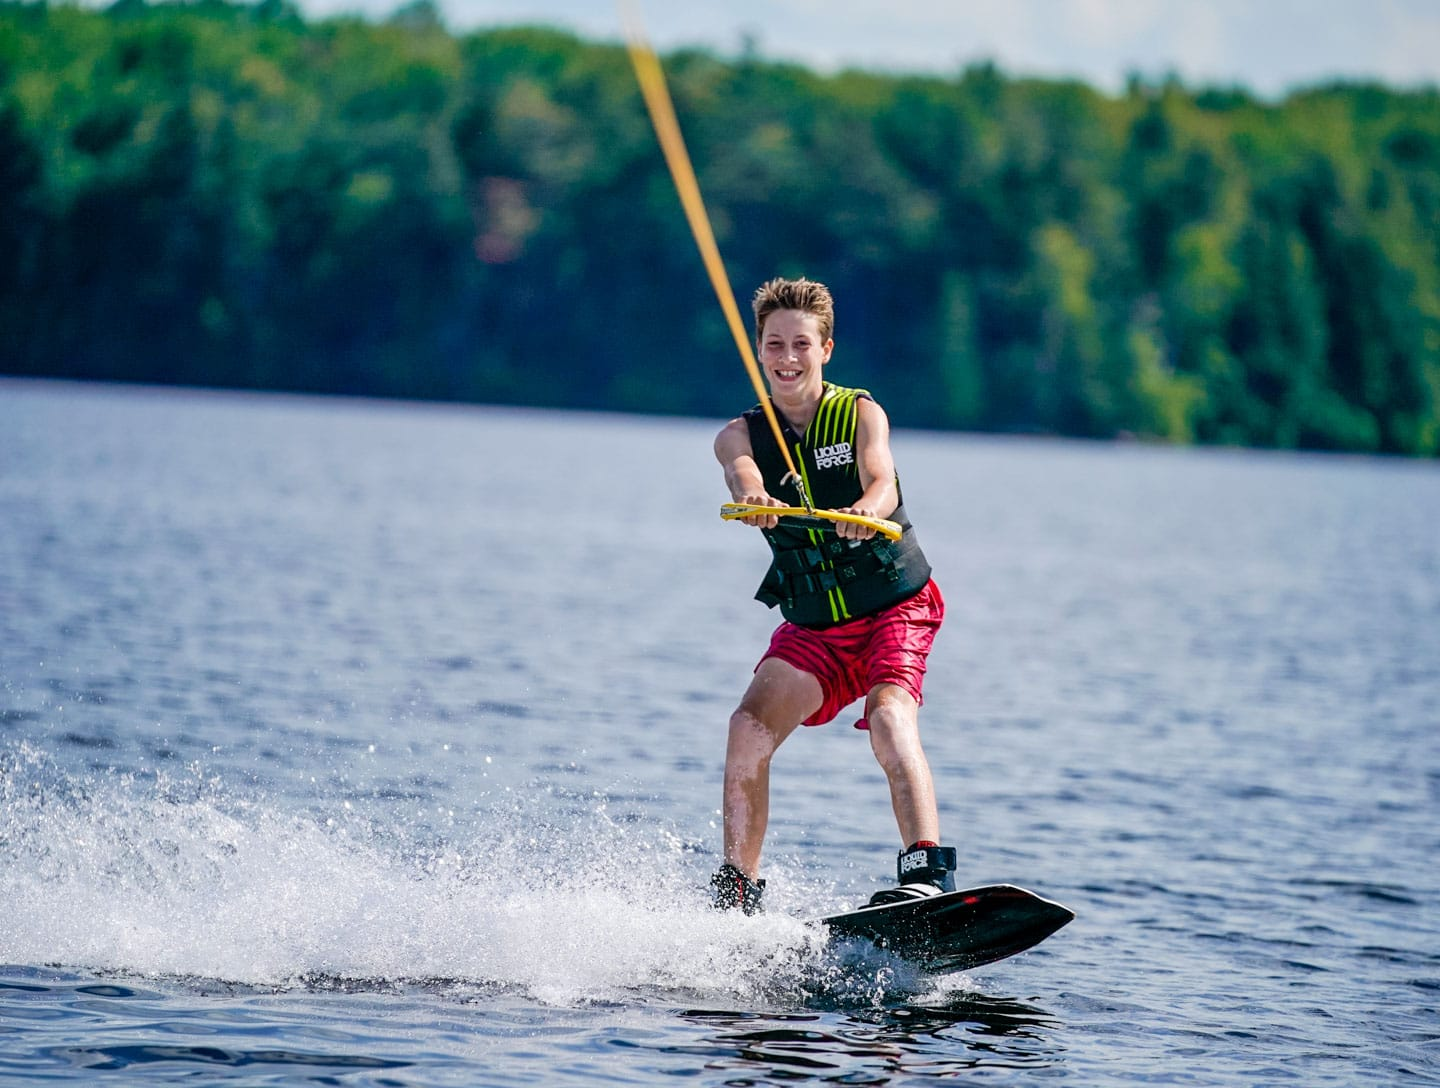 young boy water skiing